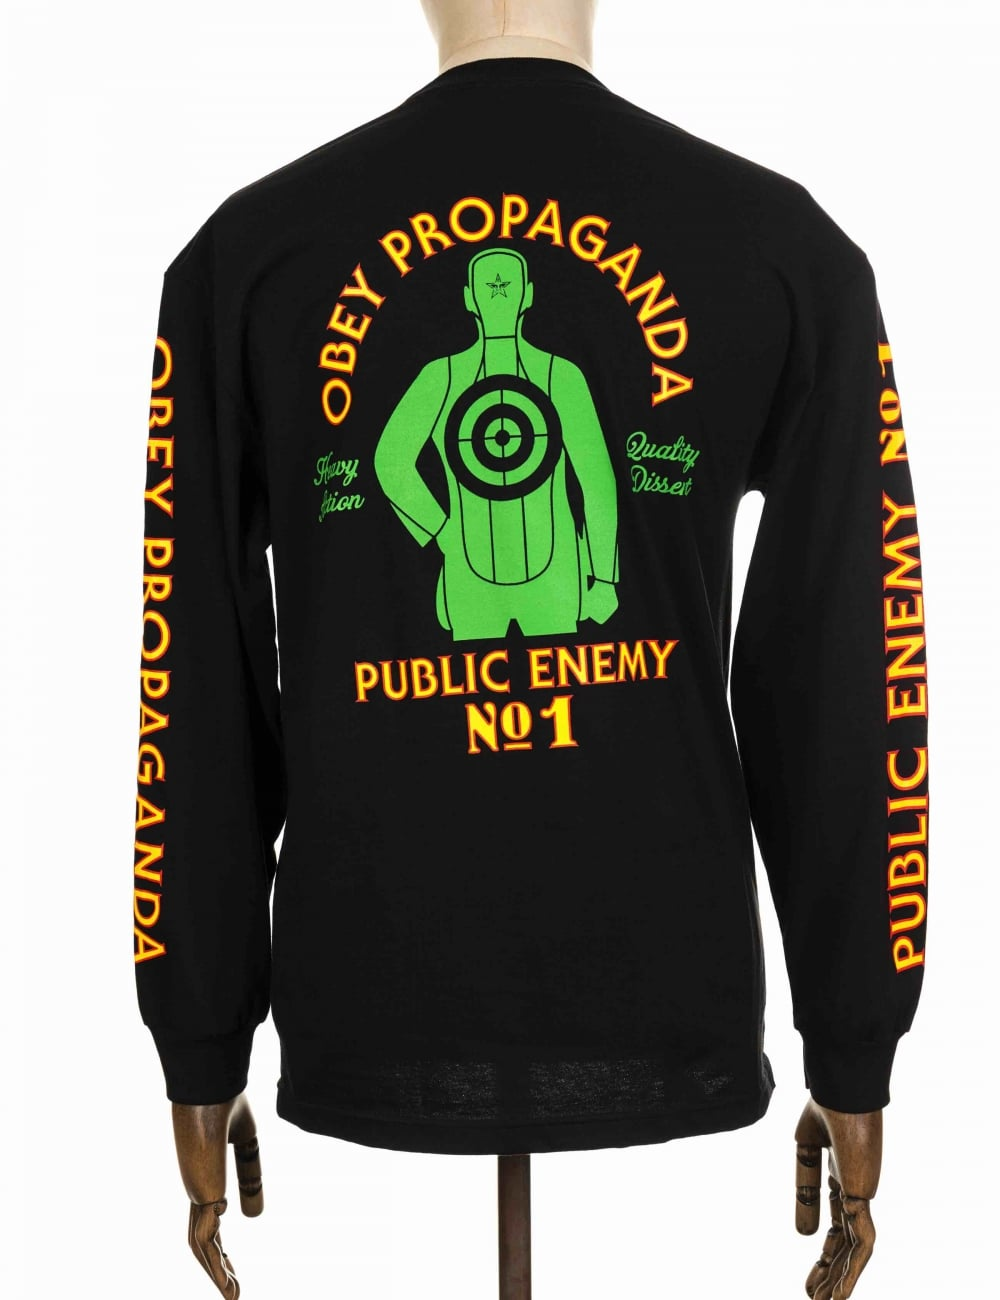 efb6a264 Obey Clothing L/S Public Enemy No.1 Tee - Black - Clothing from Fat ...